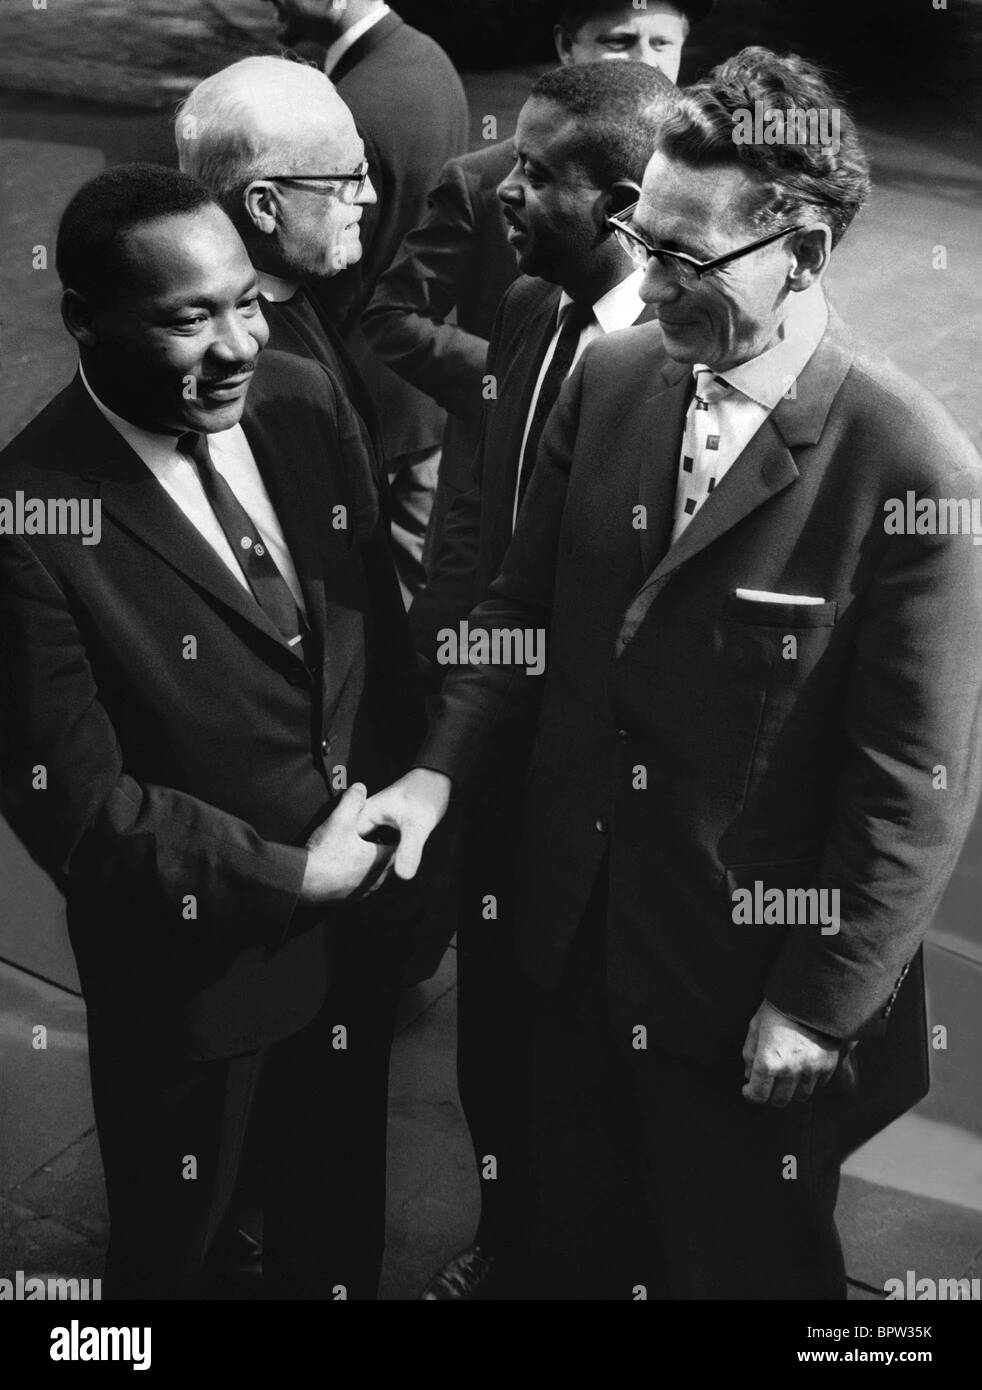 DR. MARTIN LUTHER KING BLACK WRIGHTS CAMPAIGNER 01 May 1964 - Stock Image